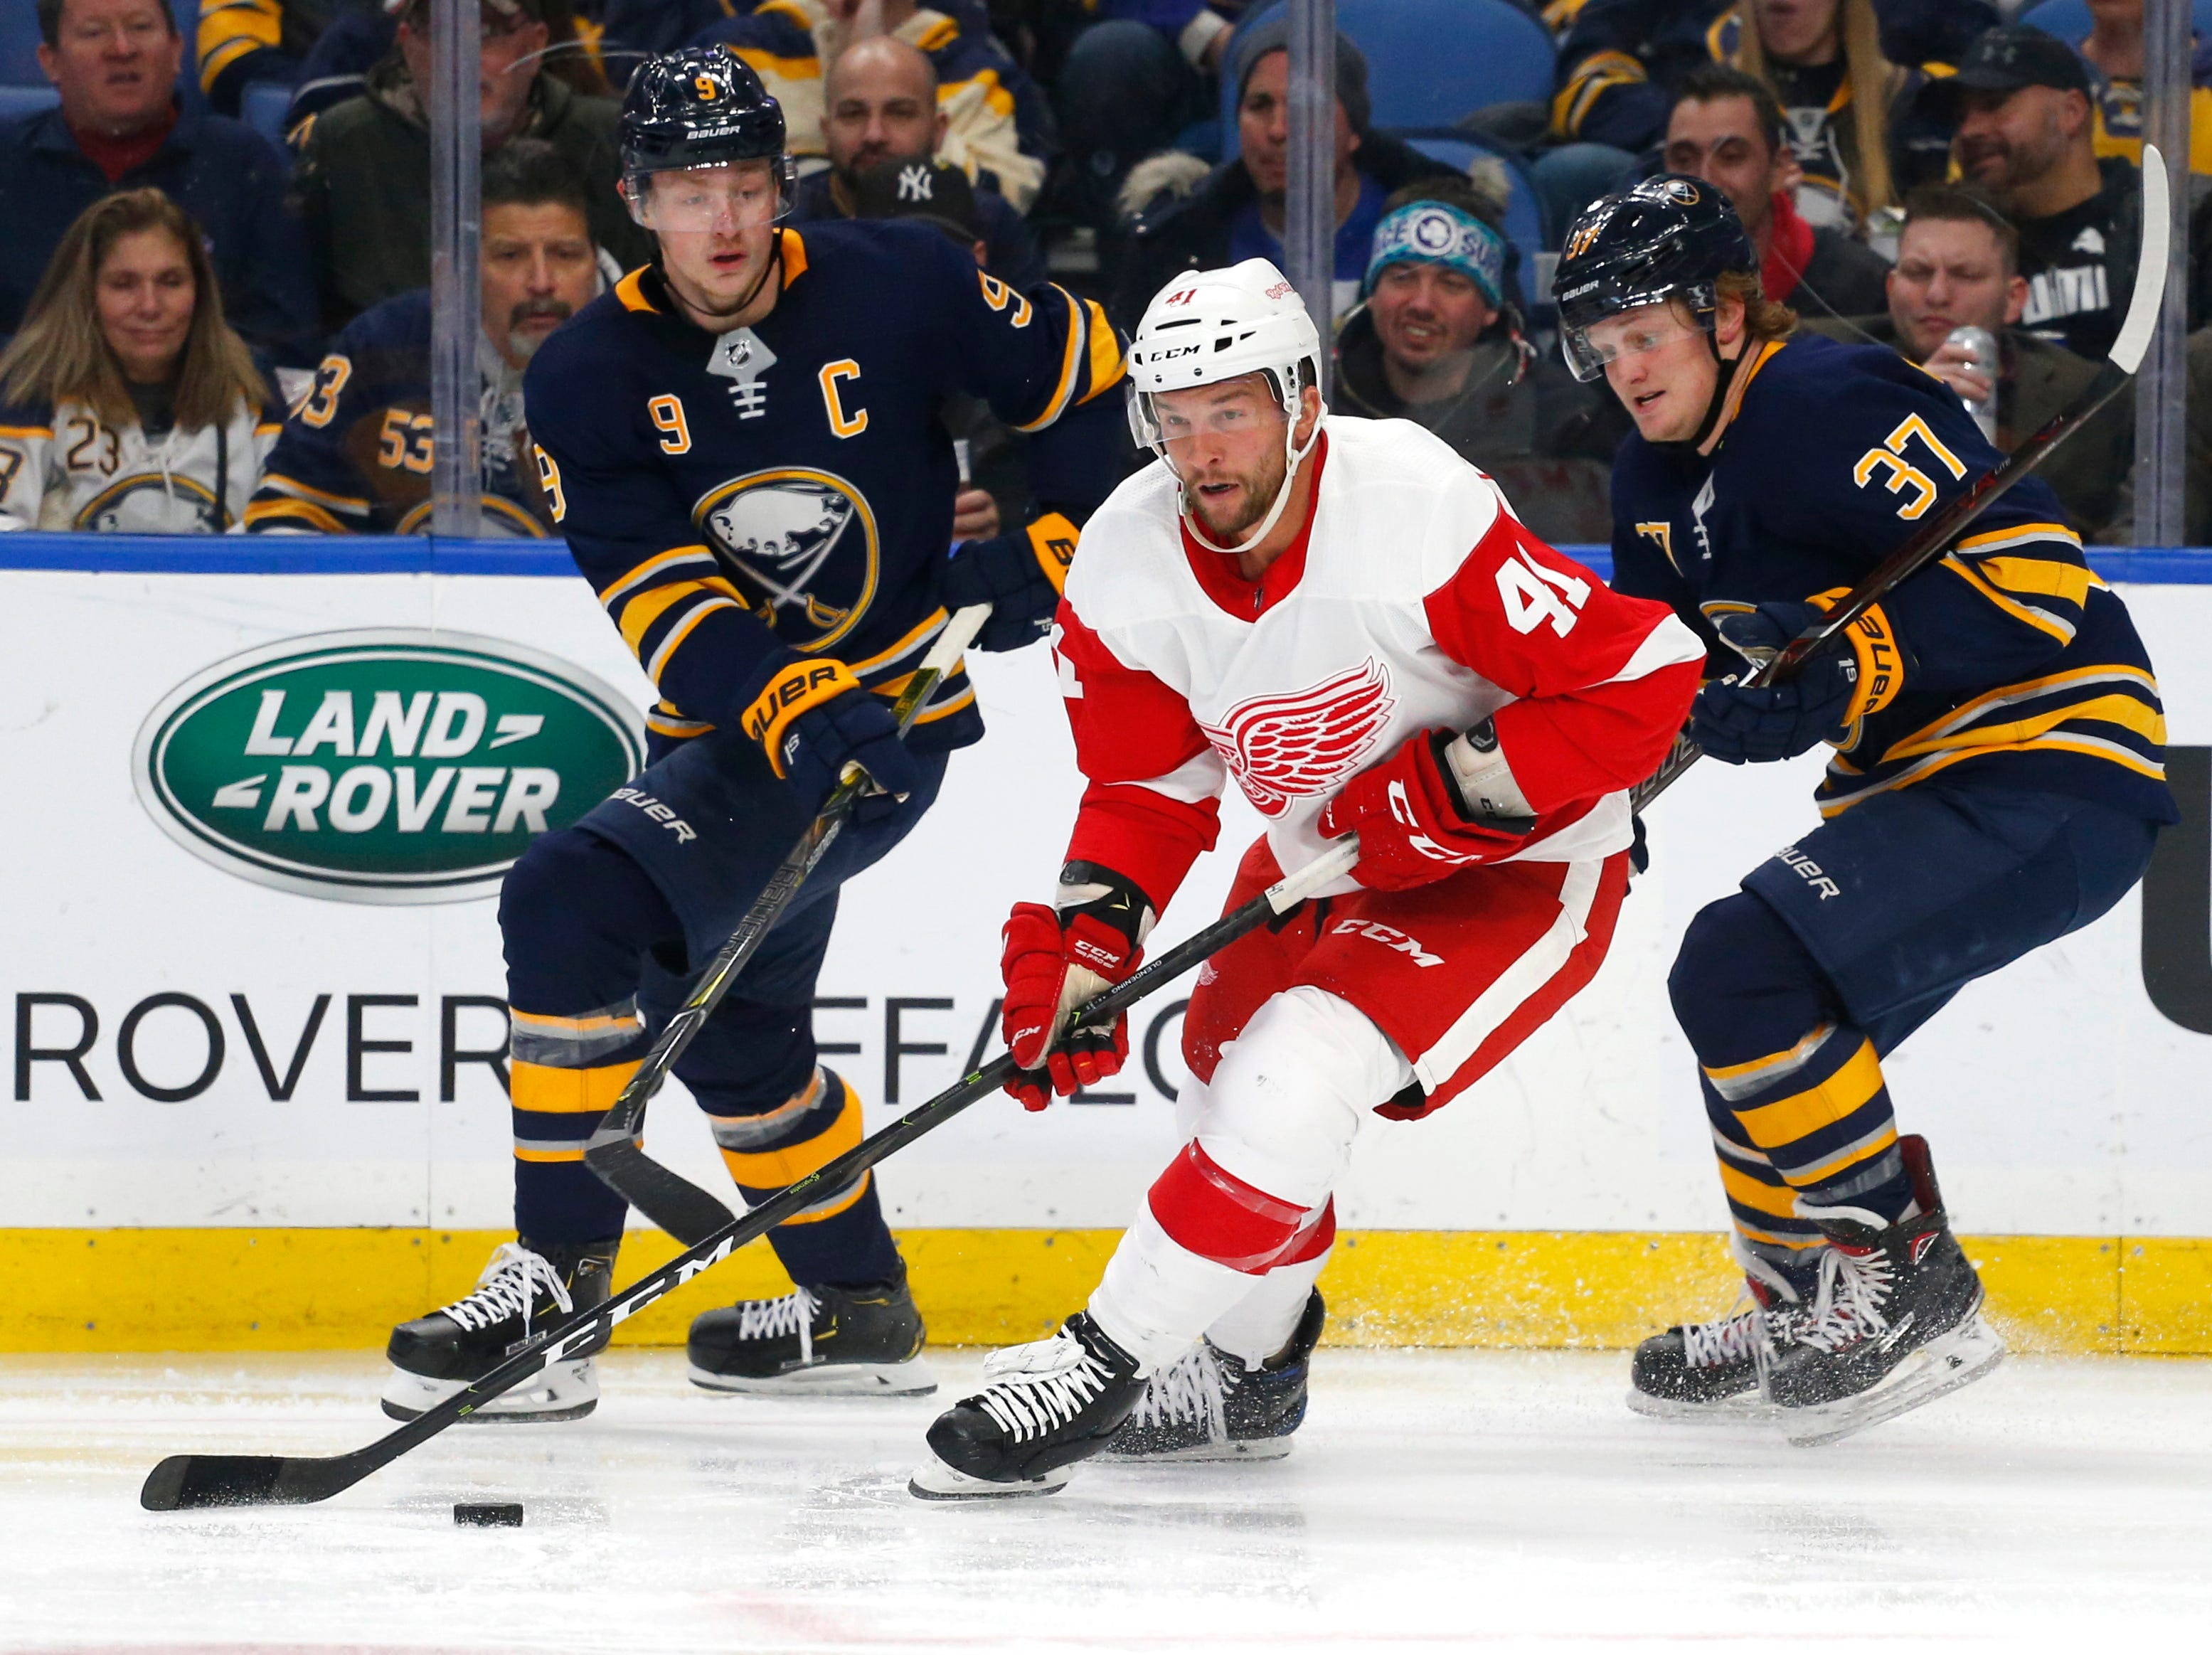 Detroit Red Wings forward Luke Glendening (41) carries the puck past Buffalo Sabres forwards Jack Eichel (9) and Casey Mittelstadt (37) during the second period of an NHL hockey game, Saturday, Feb. 9, 2019, in Buffalo N.Y. (AP Photo/Jeffrey T. Barnes)